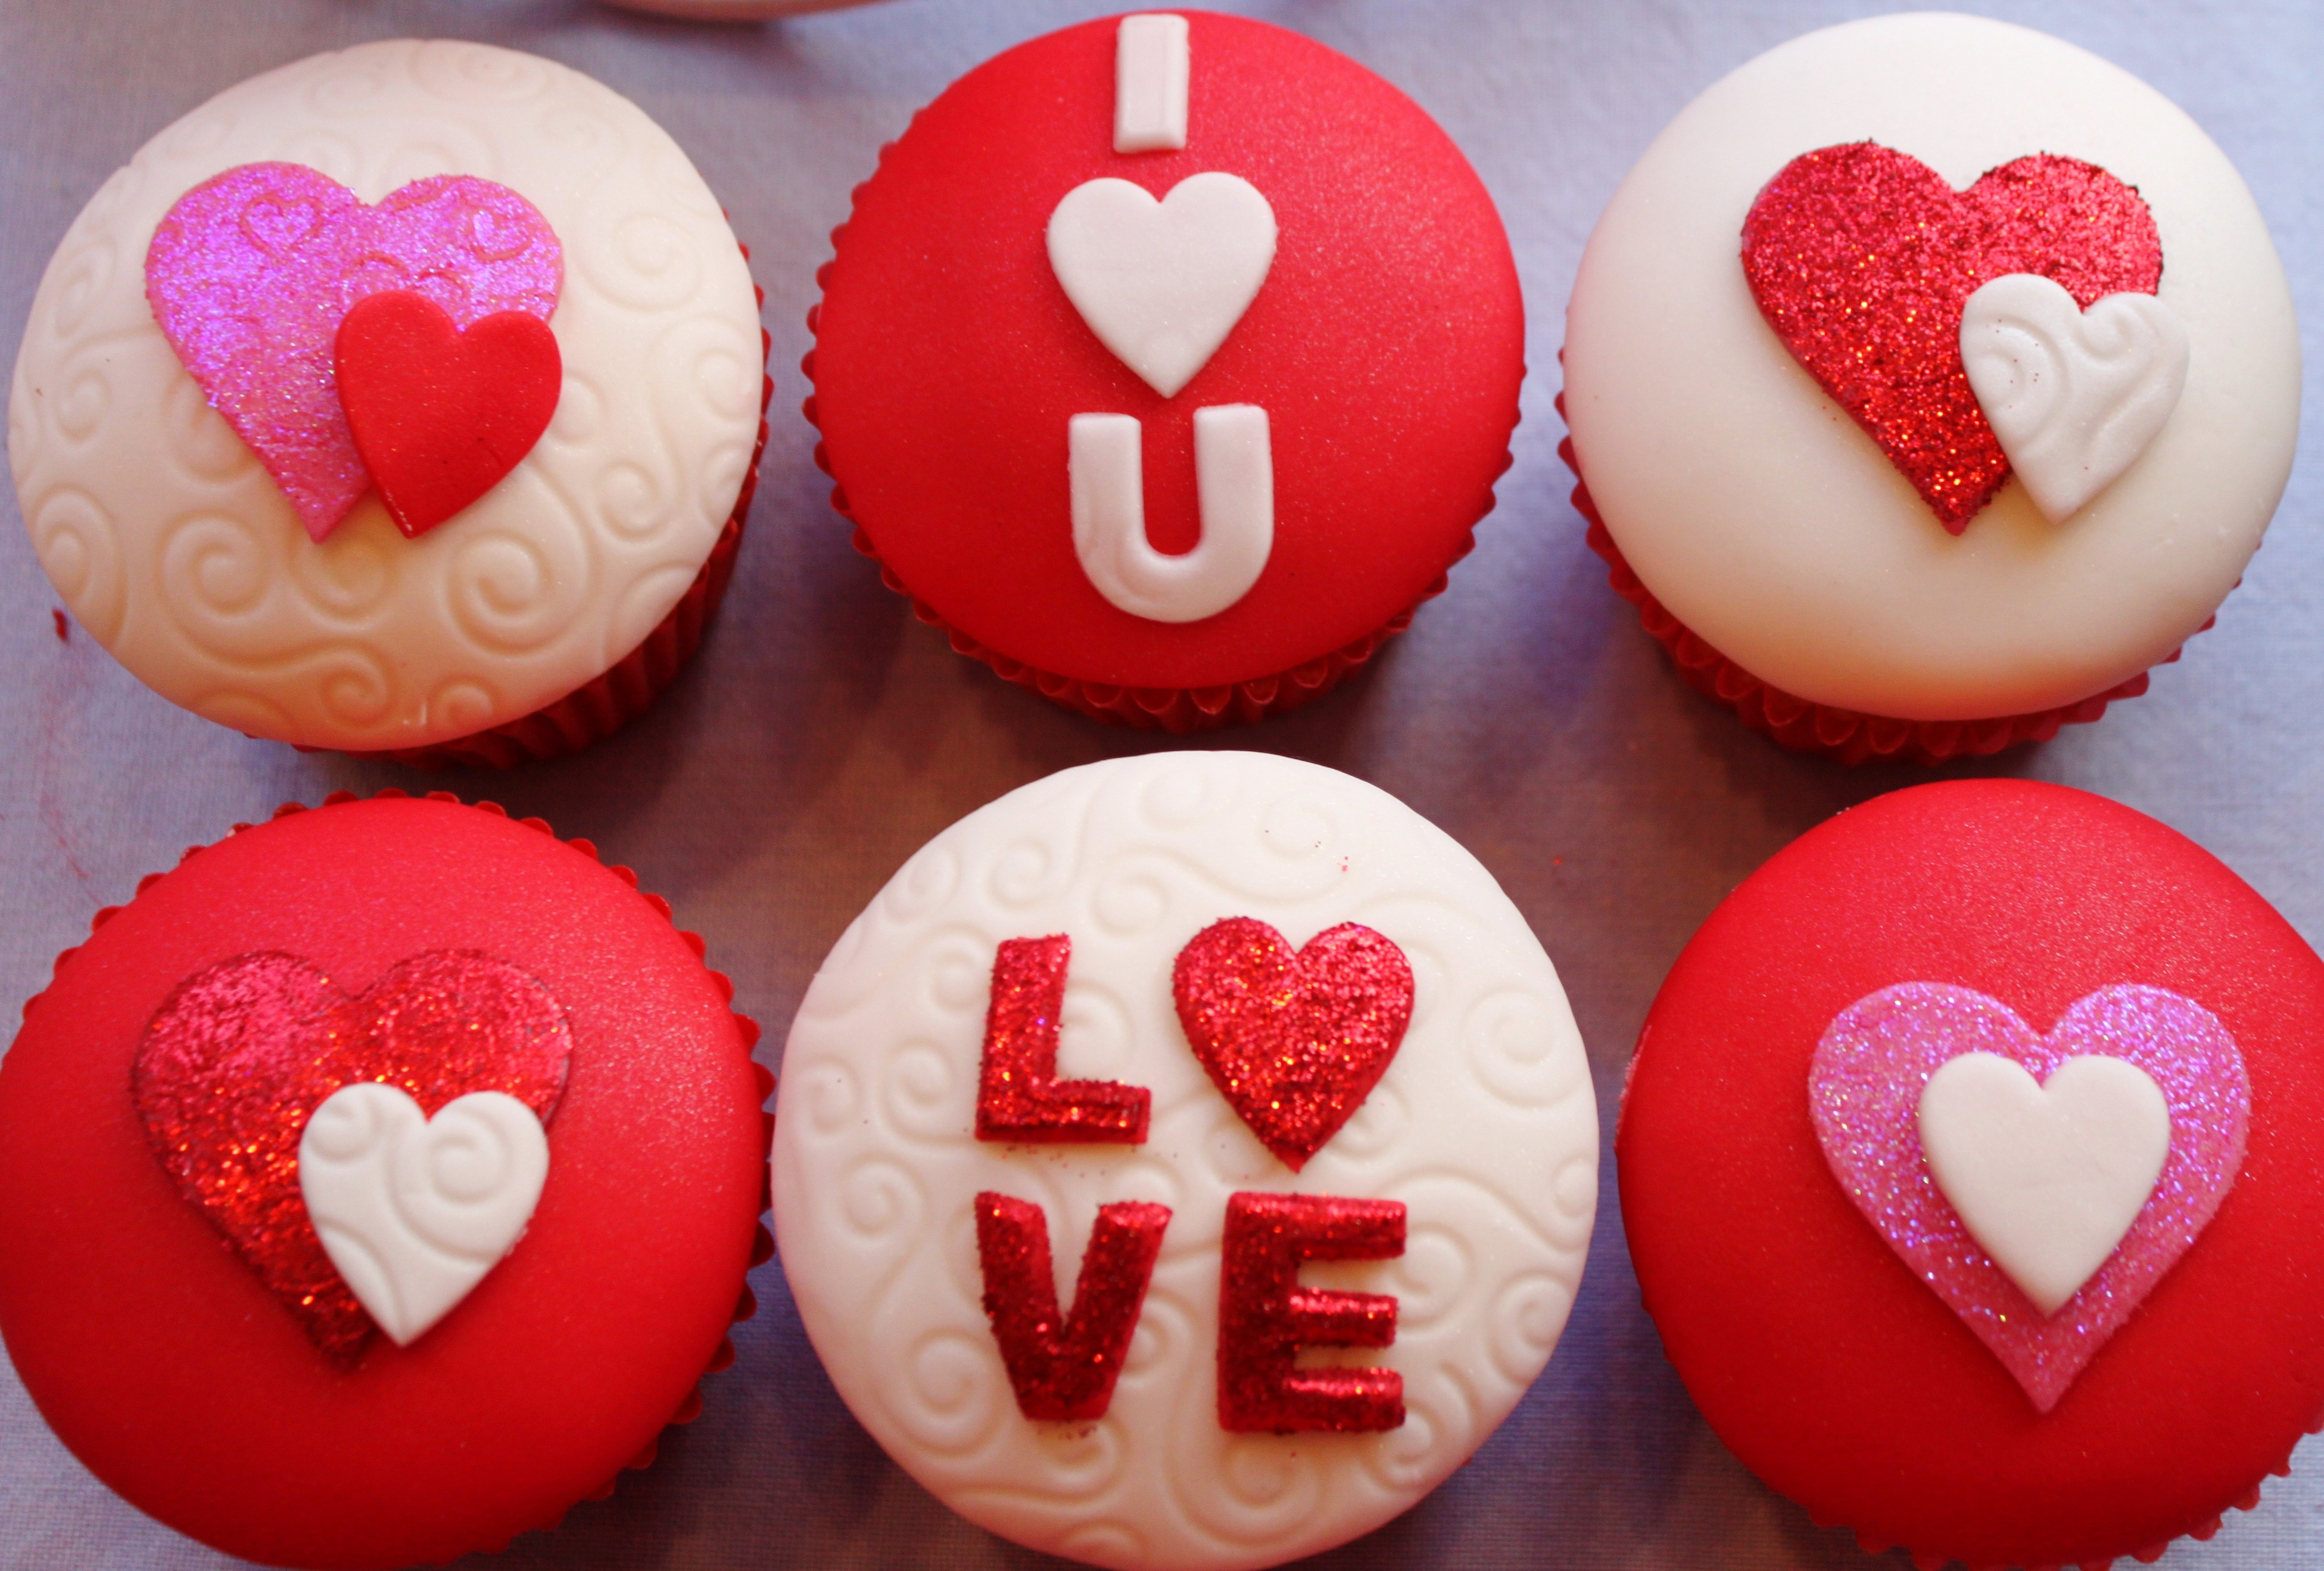 wallpaper valentine's day, cupcake, cake, heart, love, food #8490